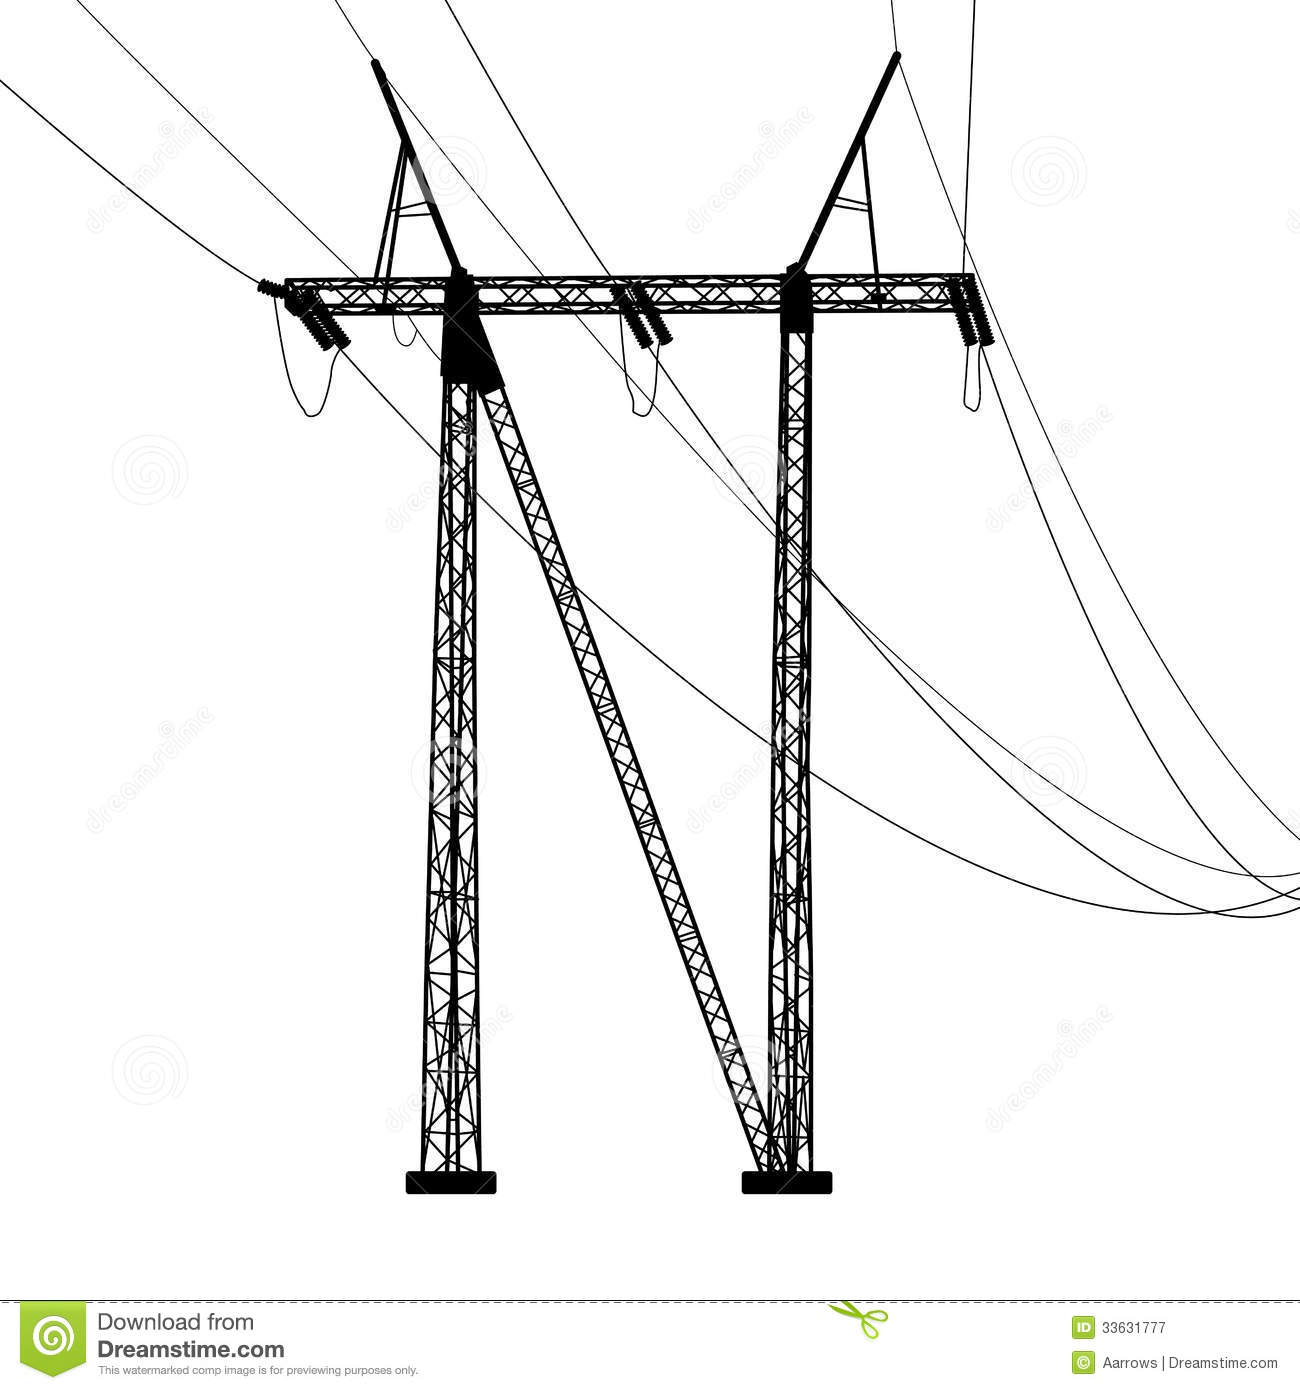 Voltage Power Lines Royalty Free Stock Photography